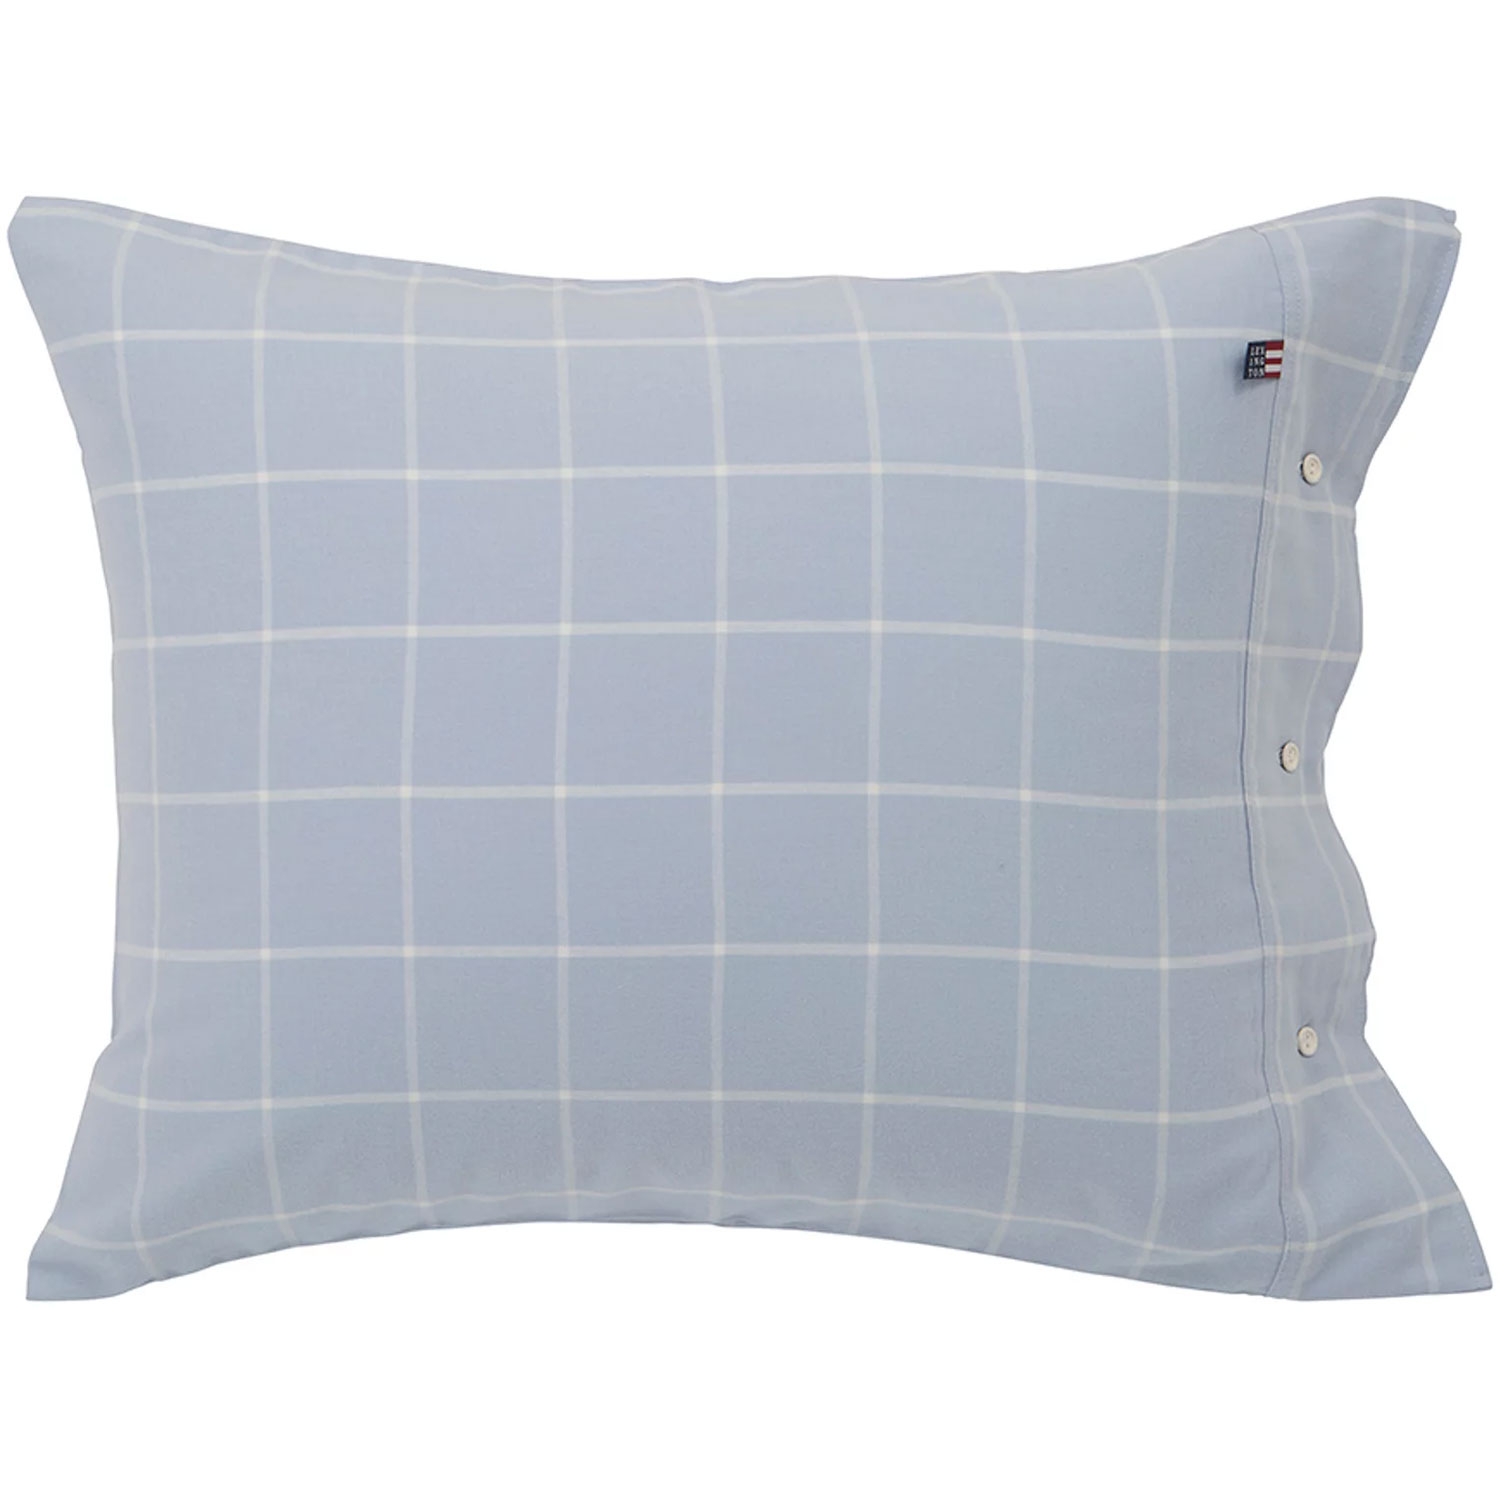 Bilde av Lexington-Hotel Light Flannel Pillowcase 50x60 cm, Light Blue/White